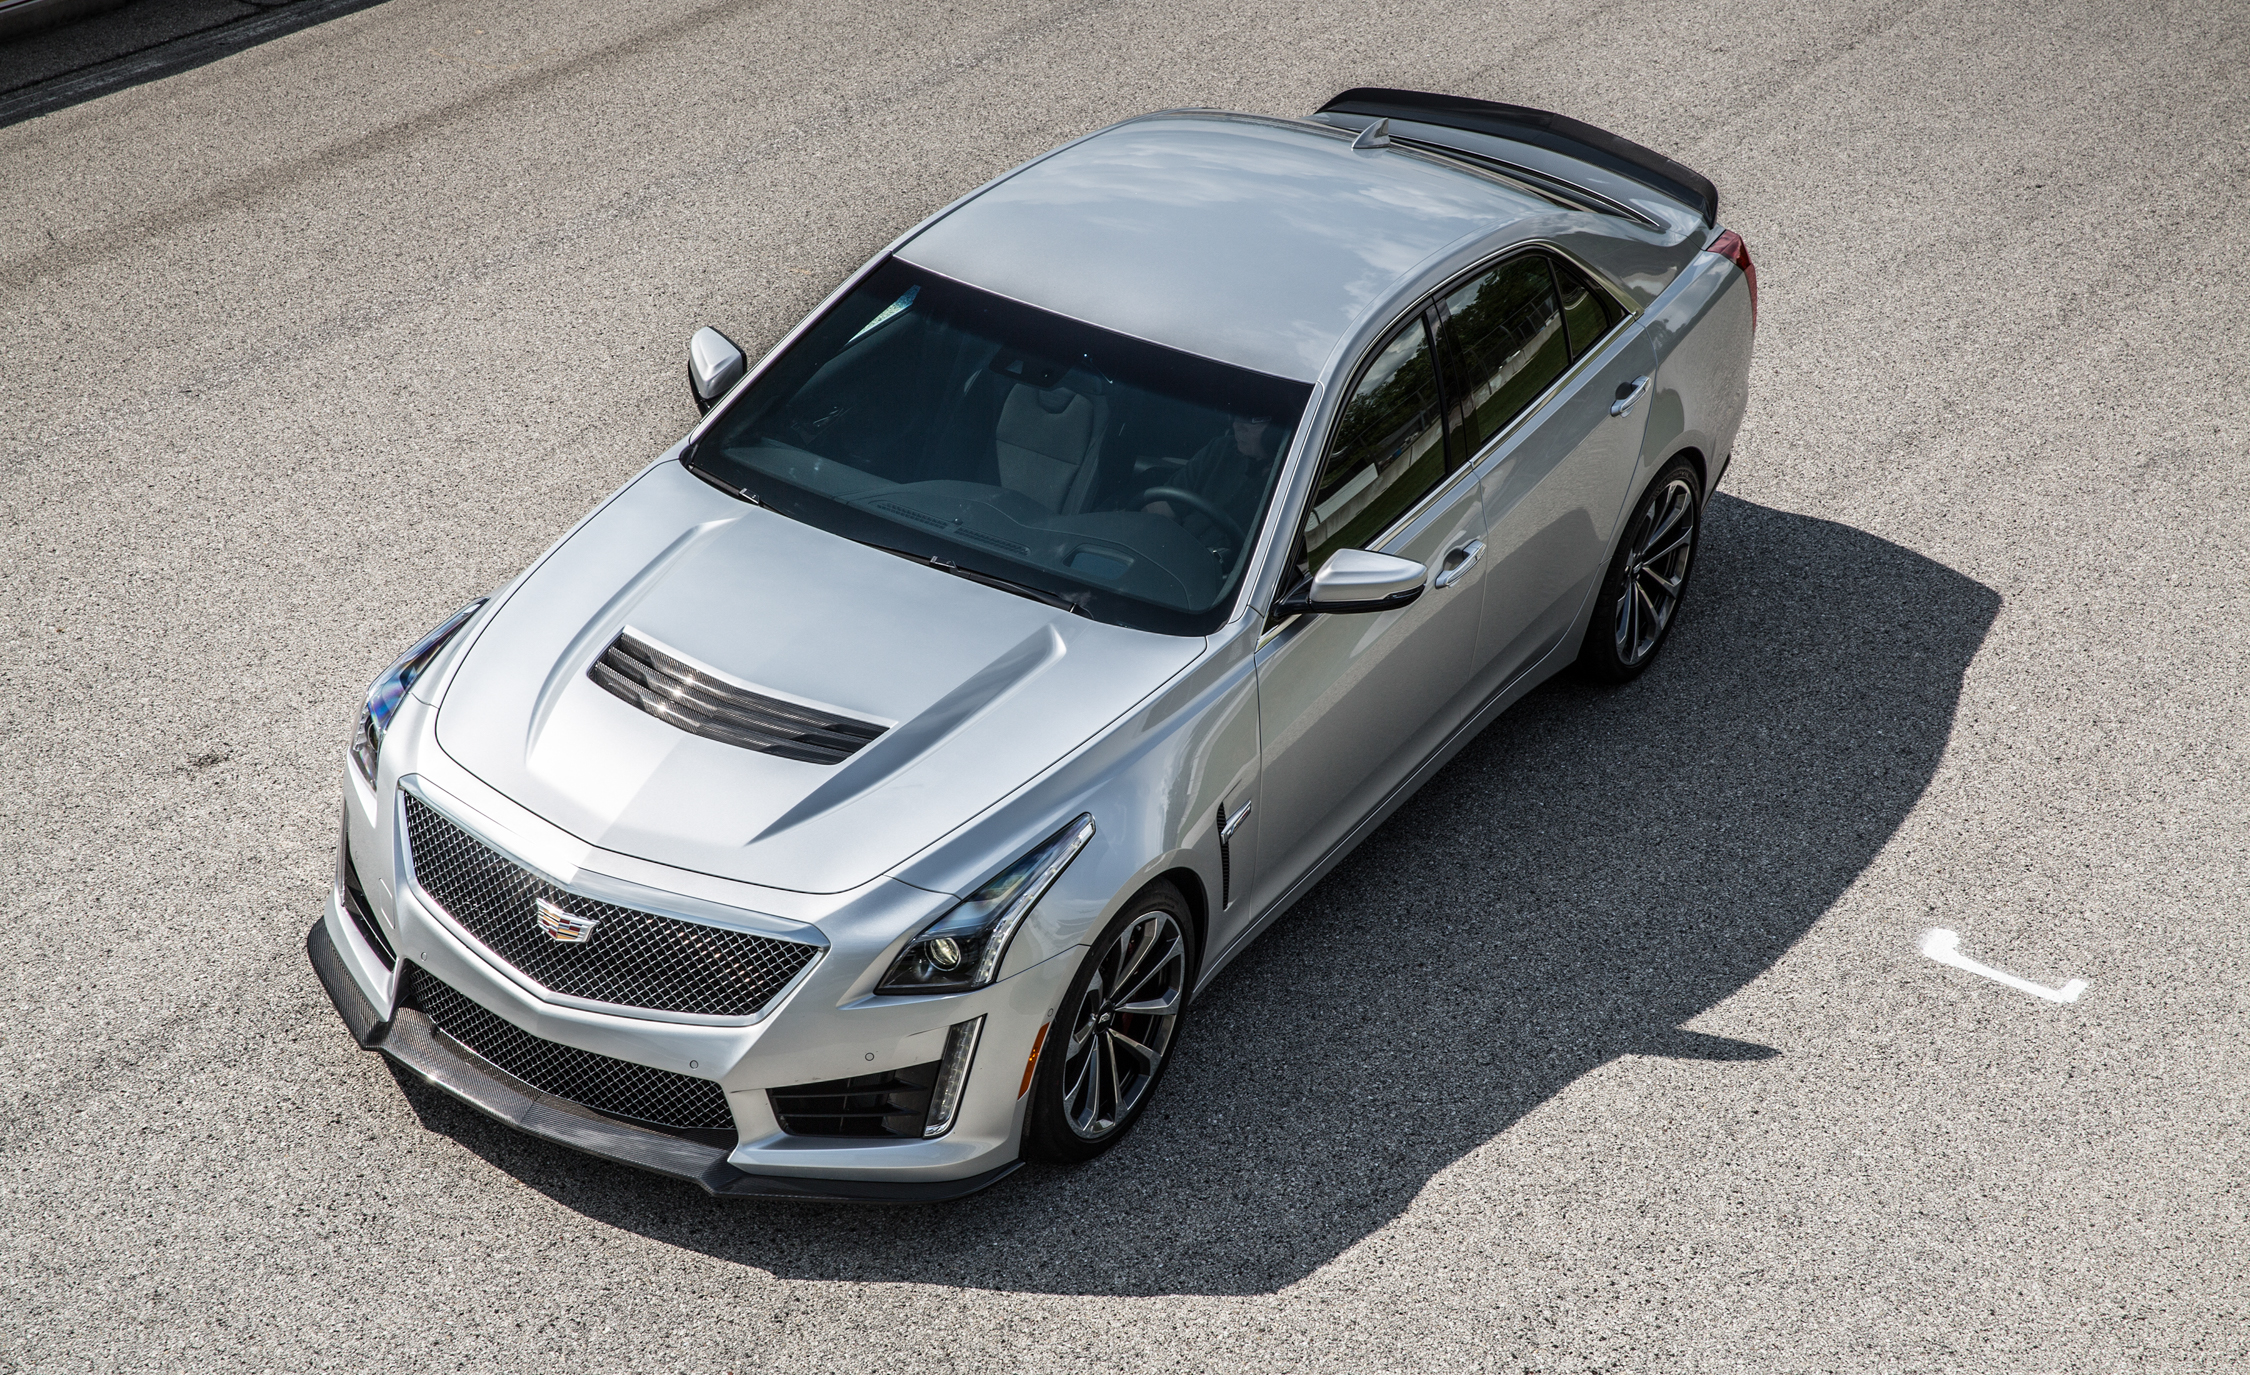 2016 cadillac cts v impressions 9159 cars performance reviews and test drive. Black Bedroom Furniture Sets. Home Design Ideas